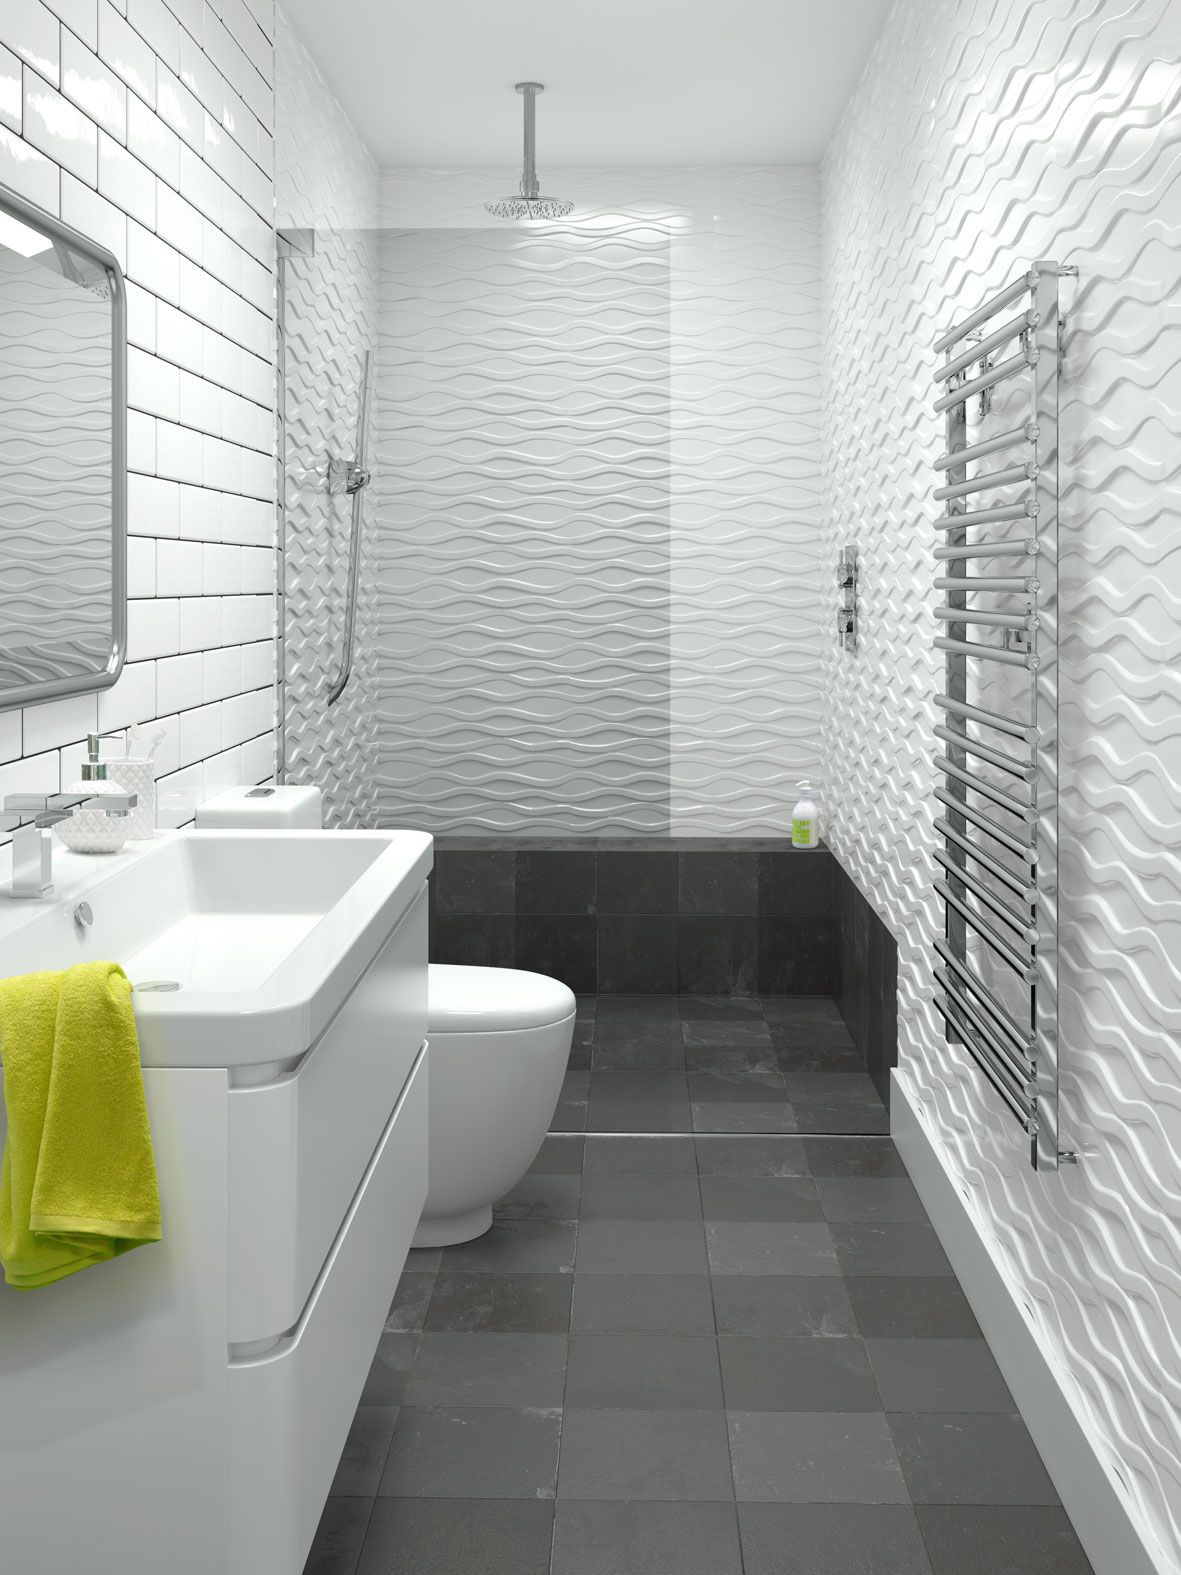 Surprising Small Wet Room Ideas, Design & Decor | Bathroom Remodel ...